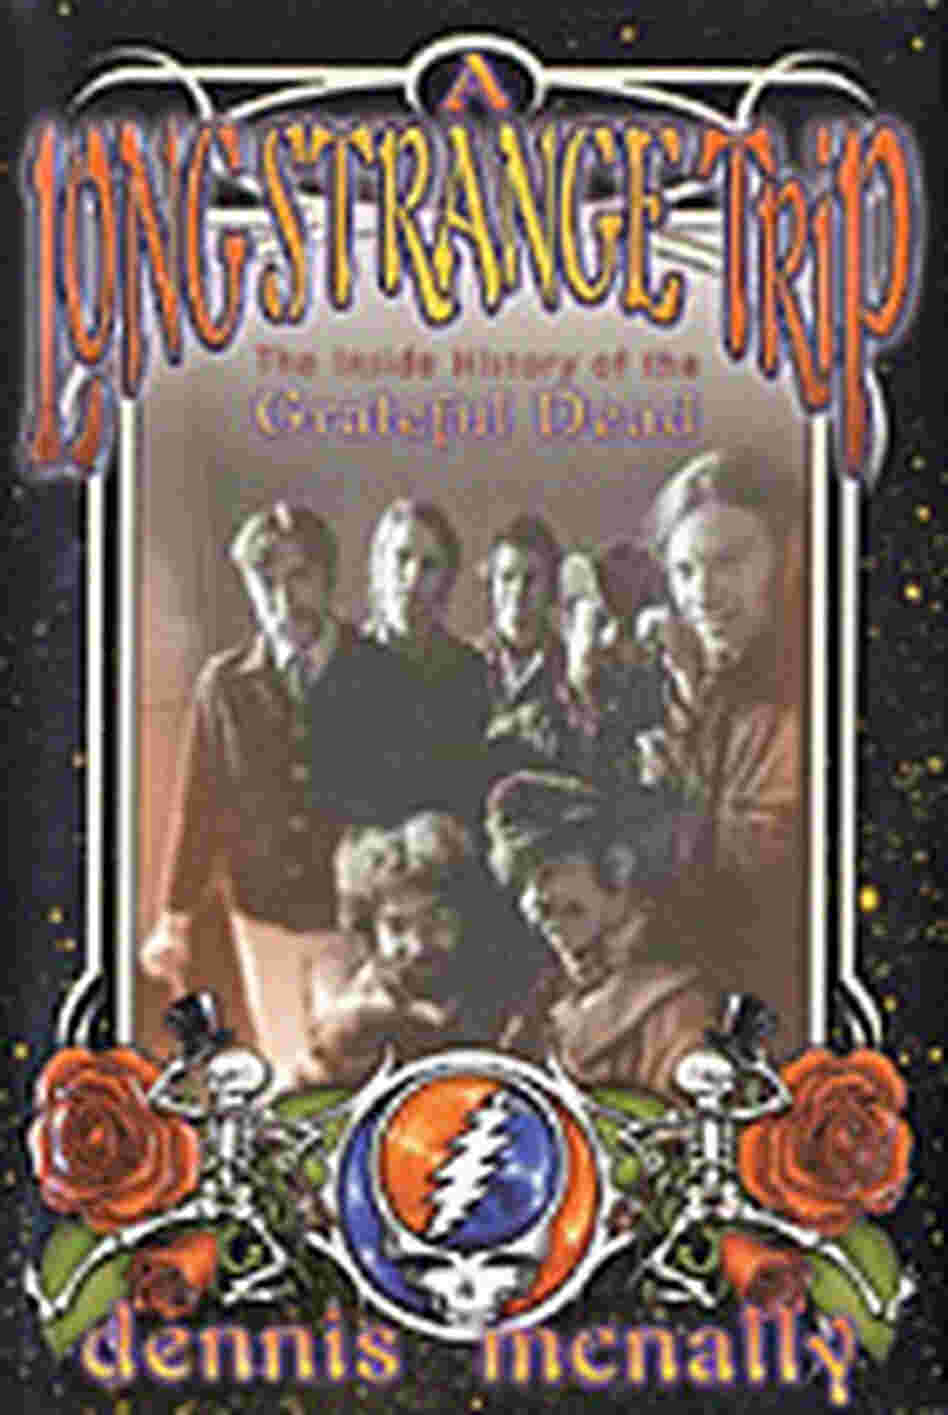 cover of 'A Long Strange Trip: The Inside History of the Grateful Dead'